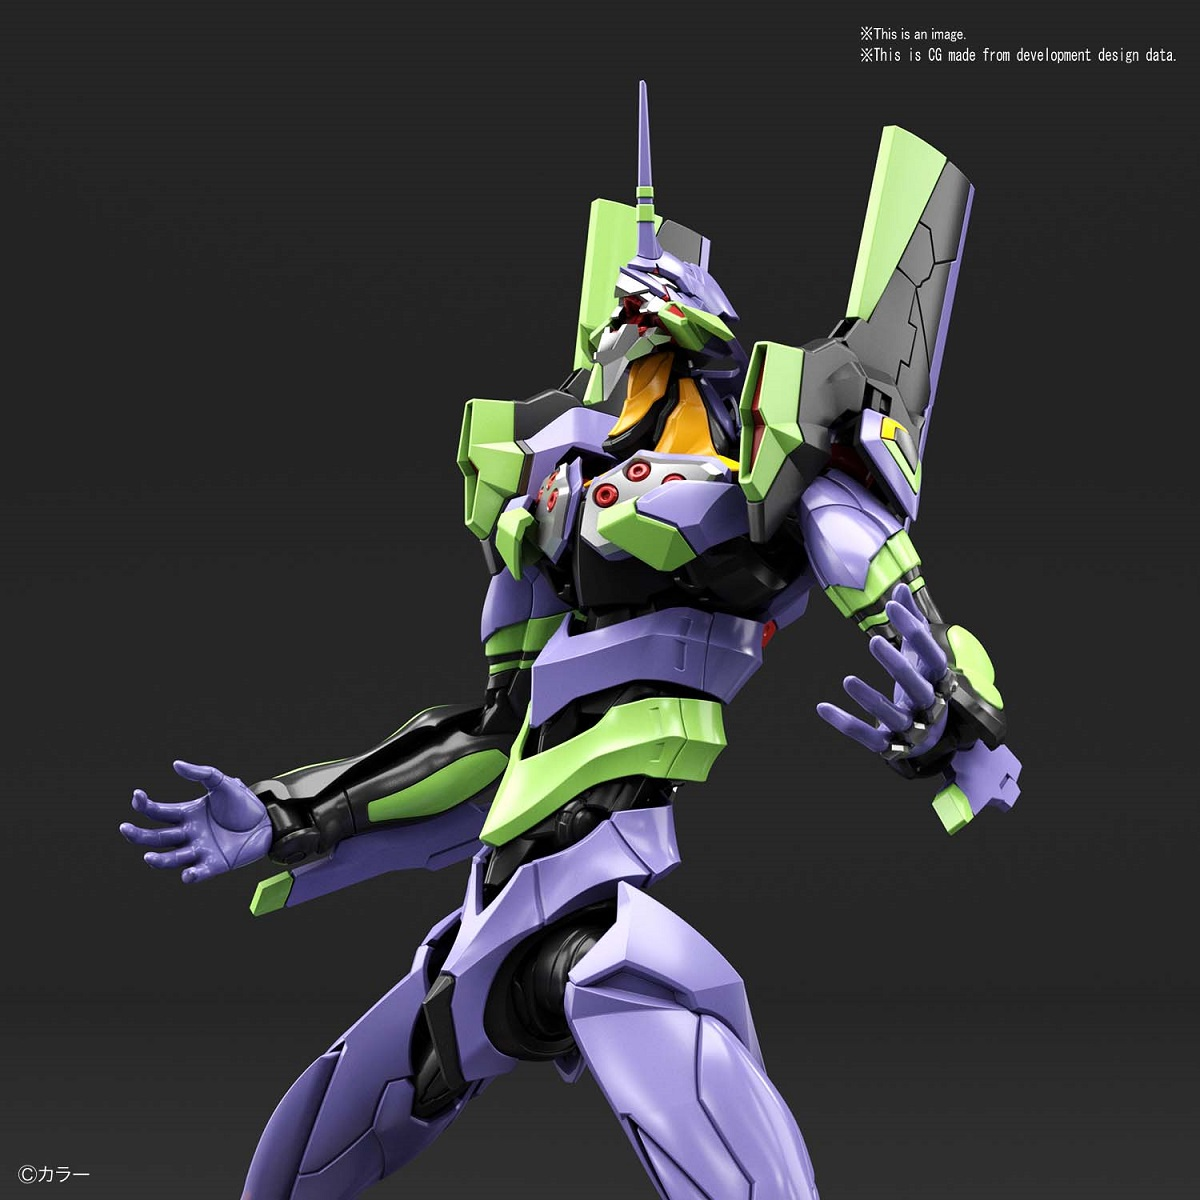 Evangelion Unit-01 Rebuild of Evangelion RG 1/144 Model Kit